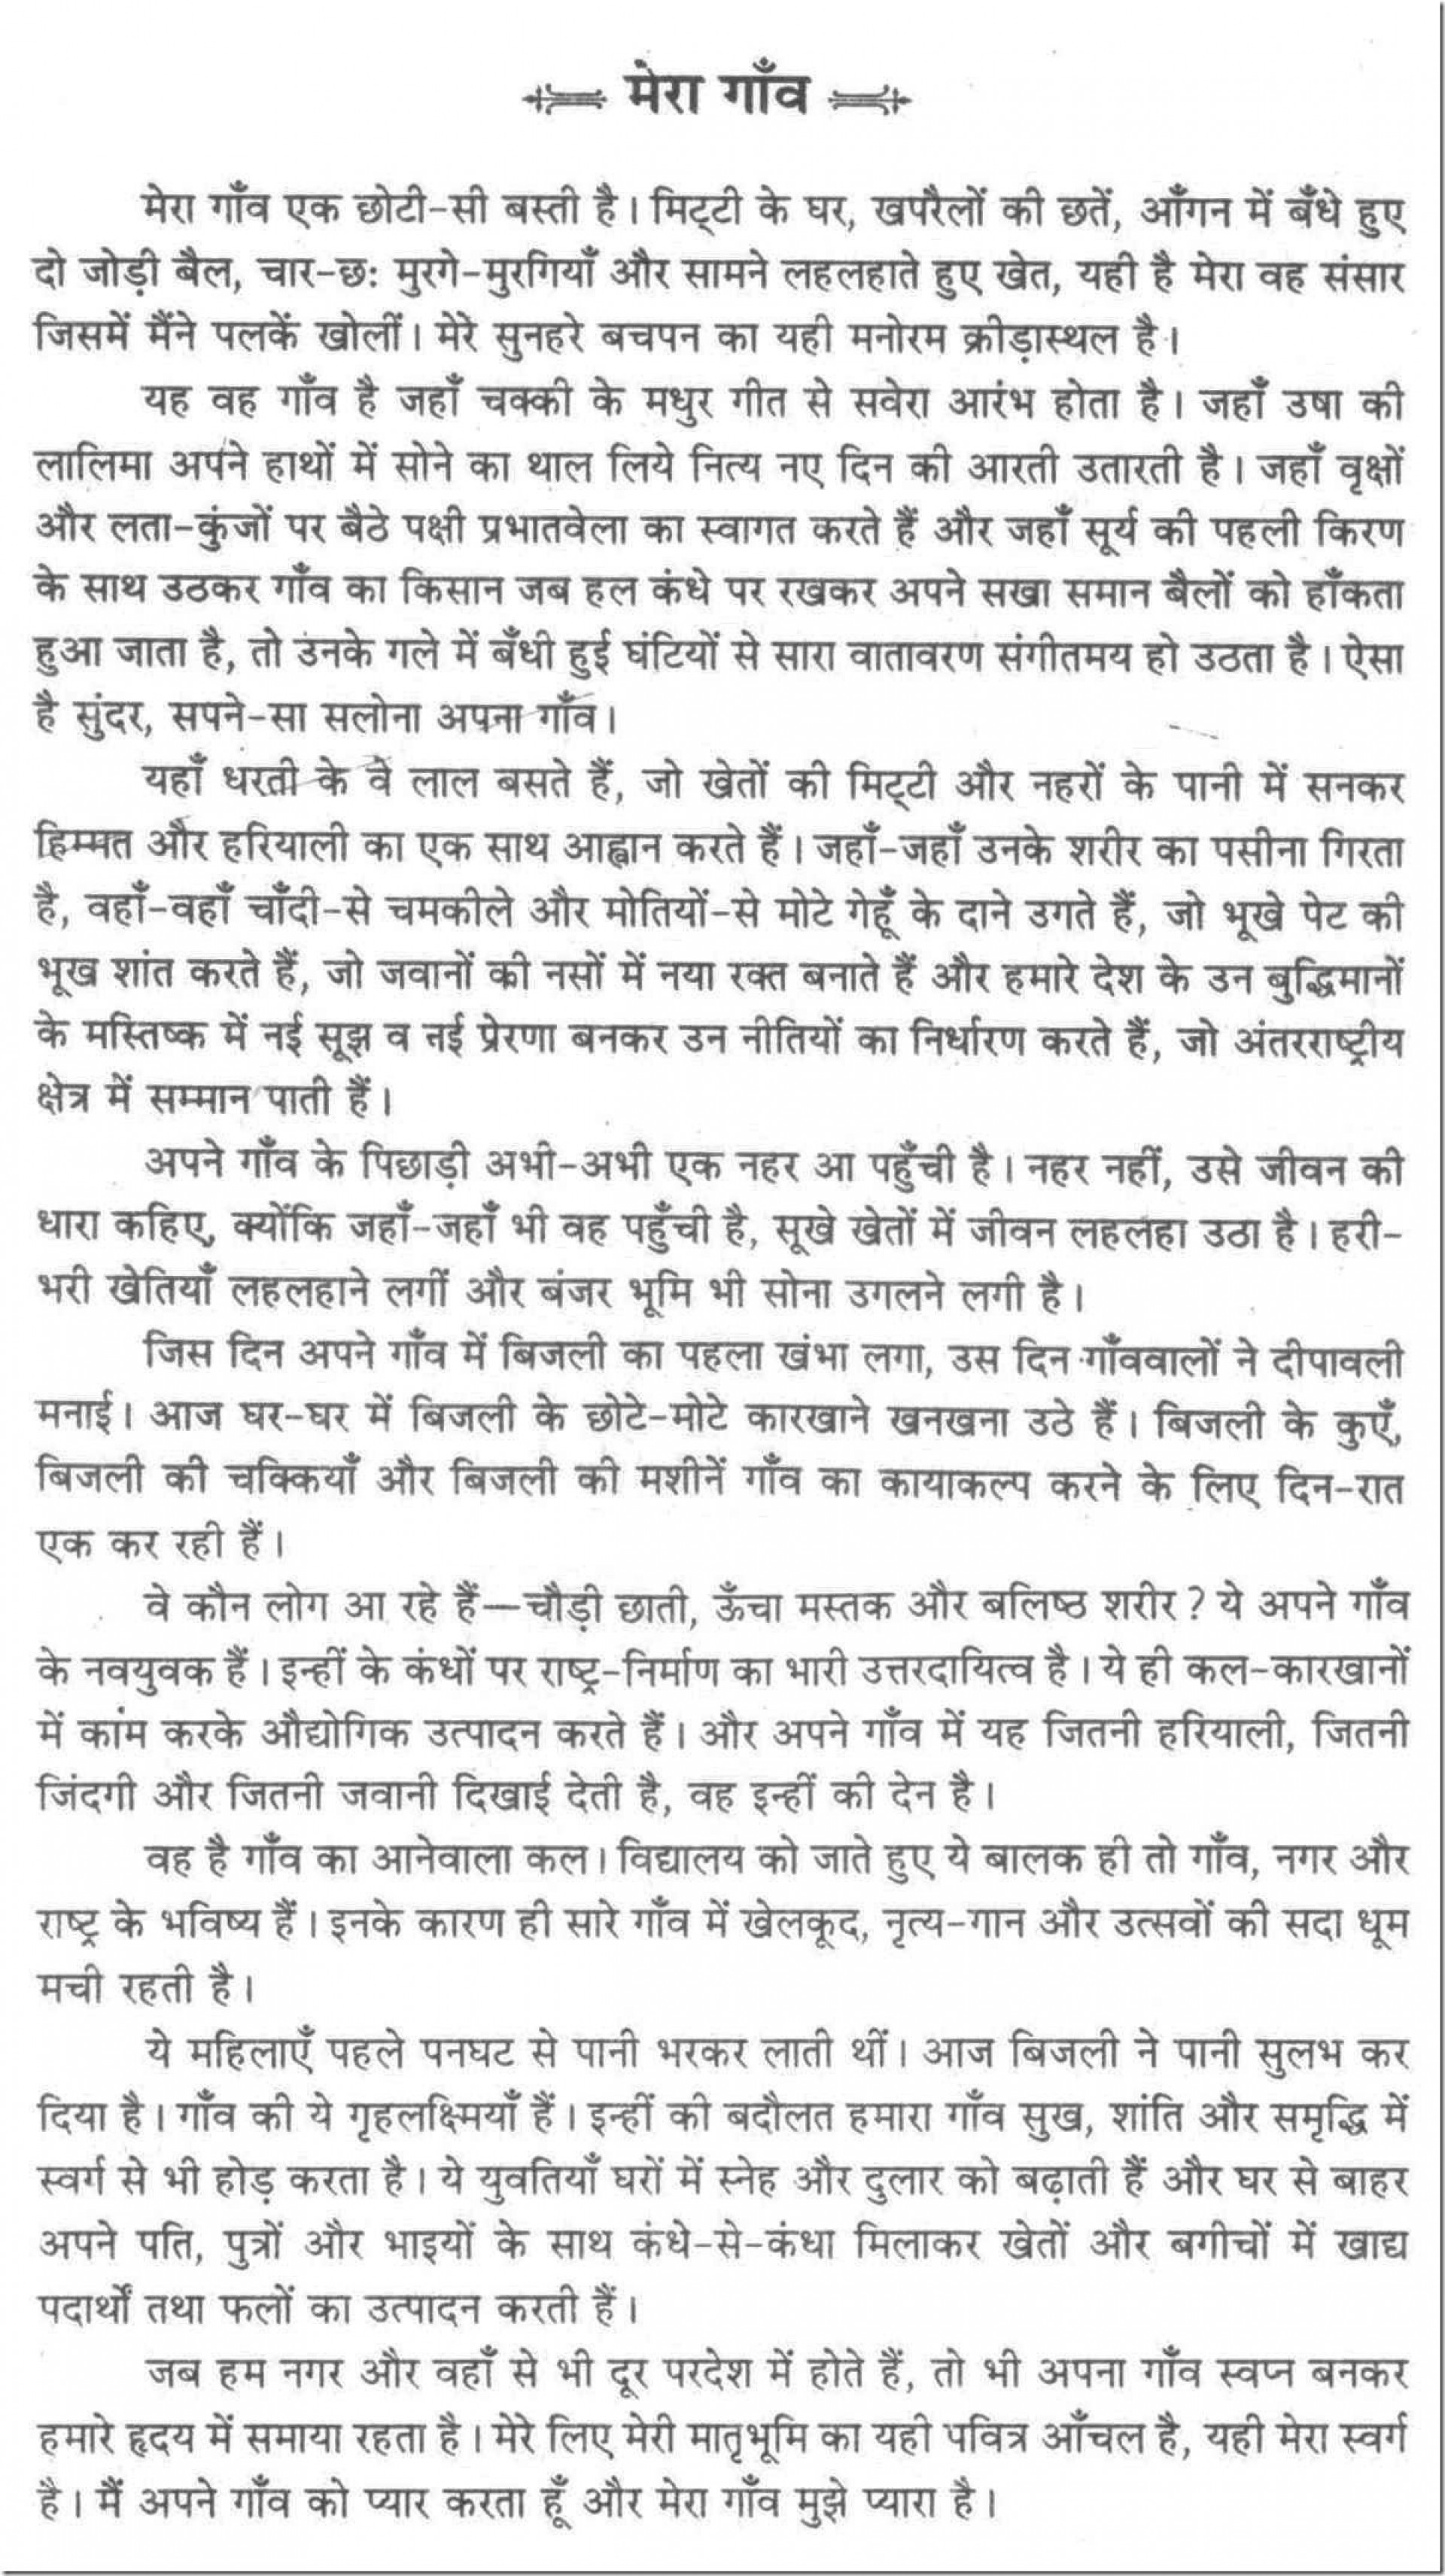 026 Essay Ambition Village Marathi On My Teaching In Life To Become Teacher Doctor Hindi Wikipedia Chartered Accountant Short Software Engineer Pilot An Economist Computer Unusual Language Quotes Quotations 1920